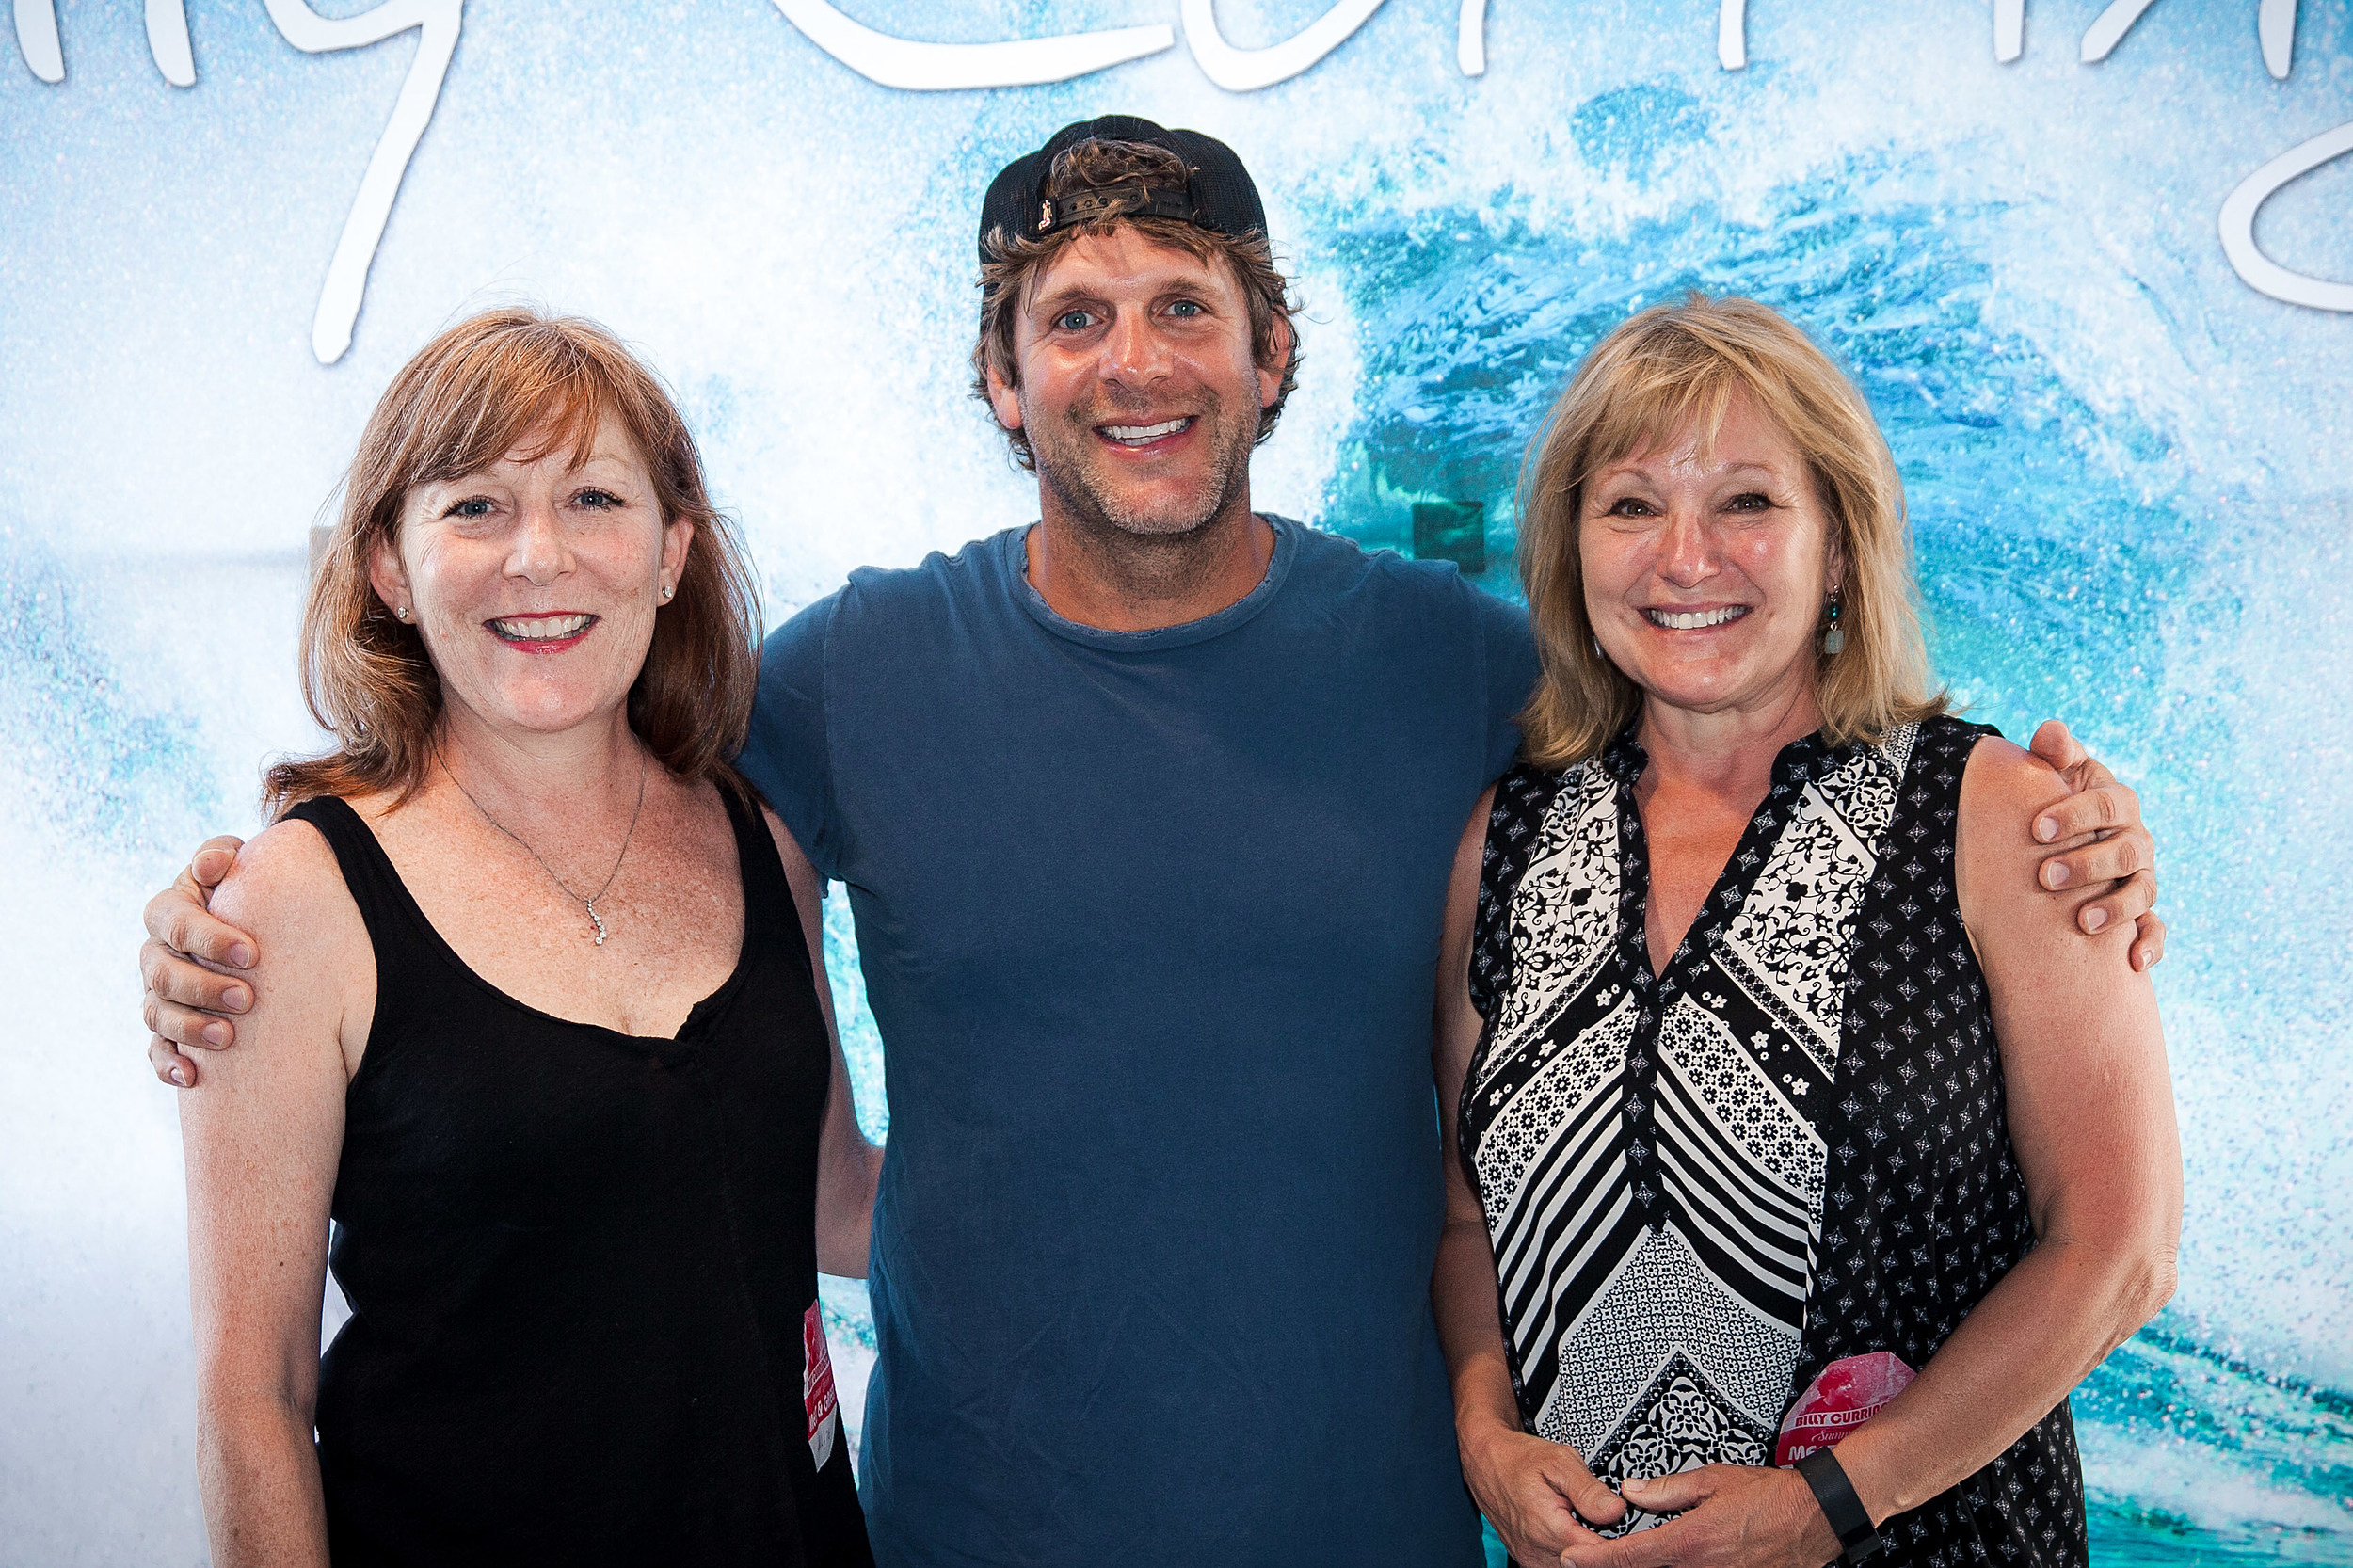 Billy Currington Witl Meet Greet Photos From Taste Of Country 2016